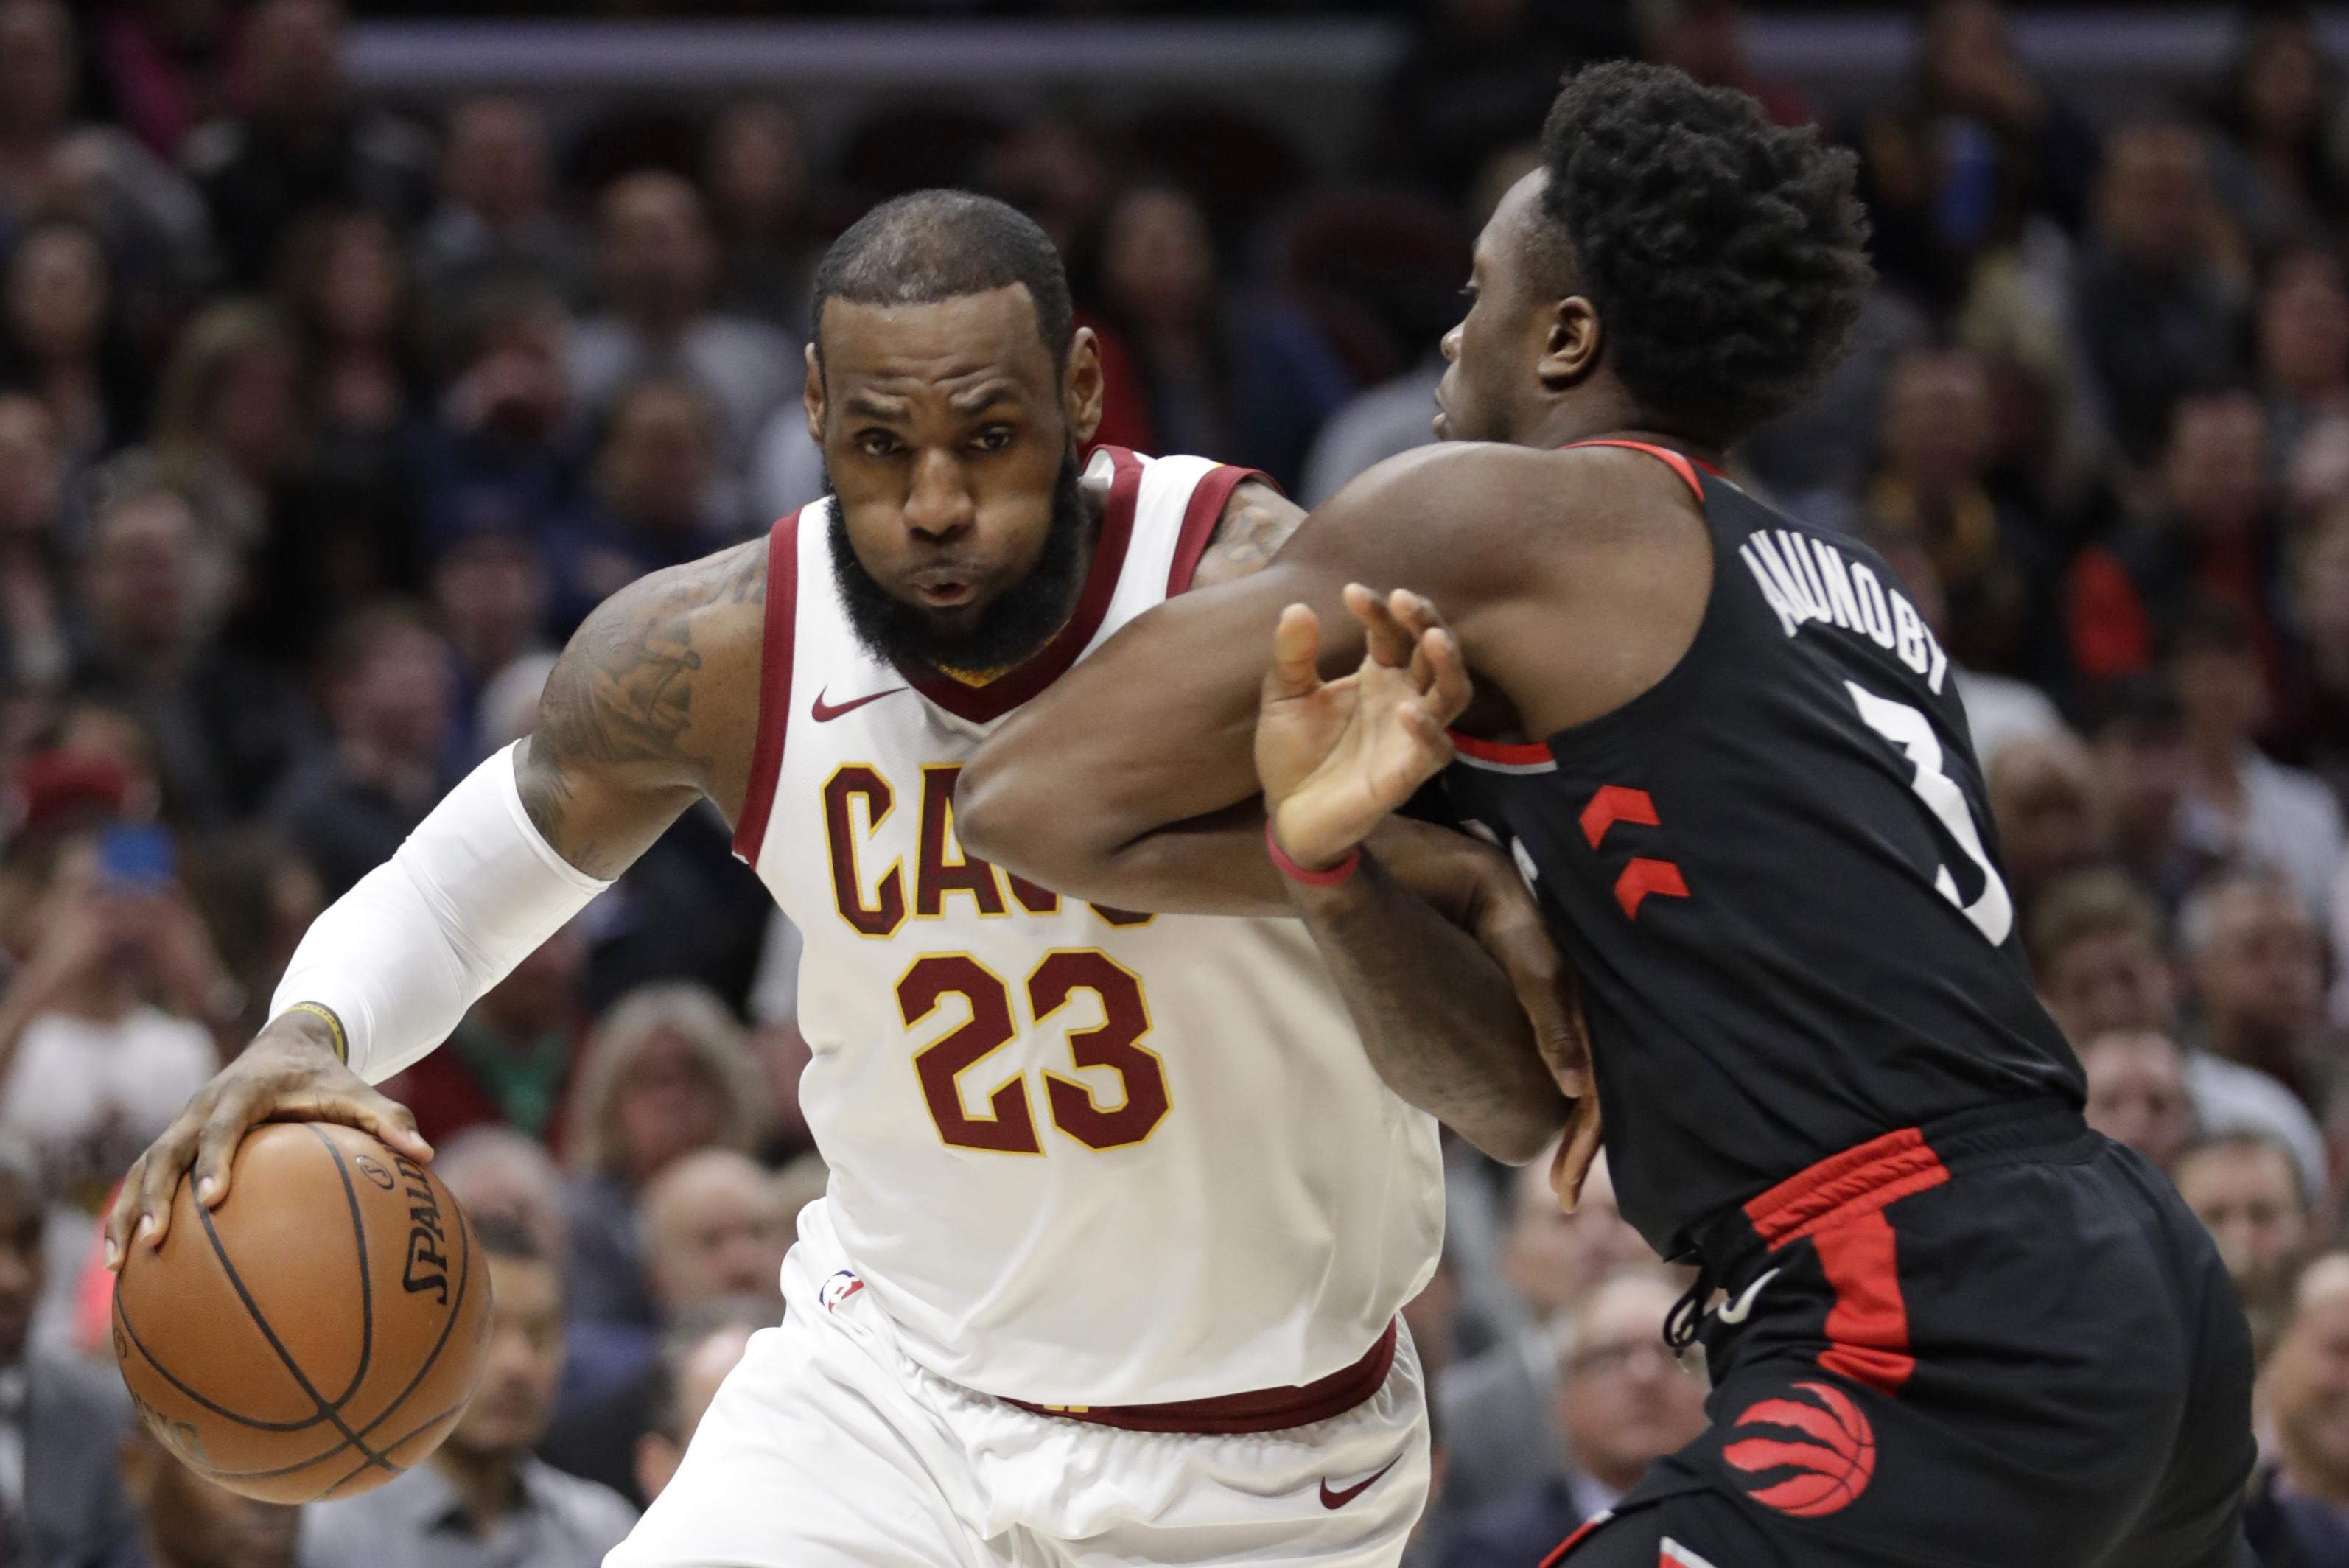 cheaper d820a 4868b Cleveland Cavaliers  LeBron James, left, drives past Toronto Raptors  OG  Anunoby during